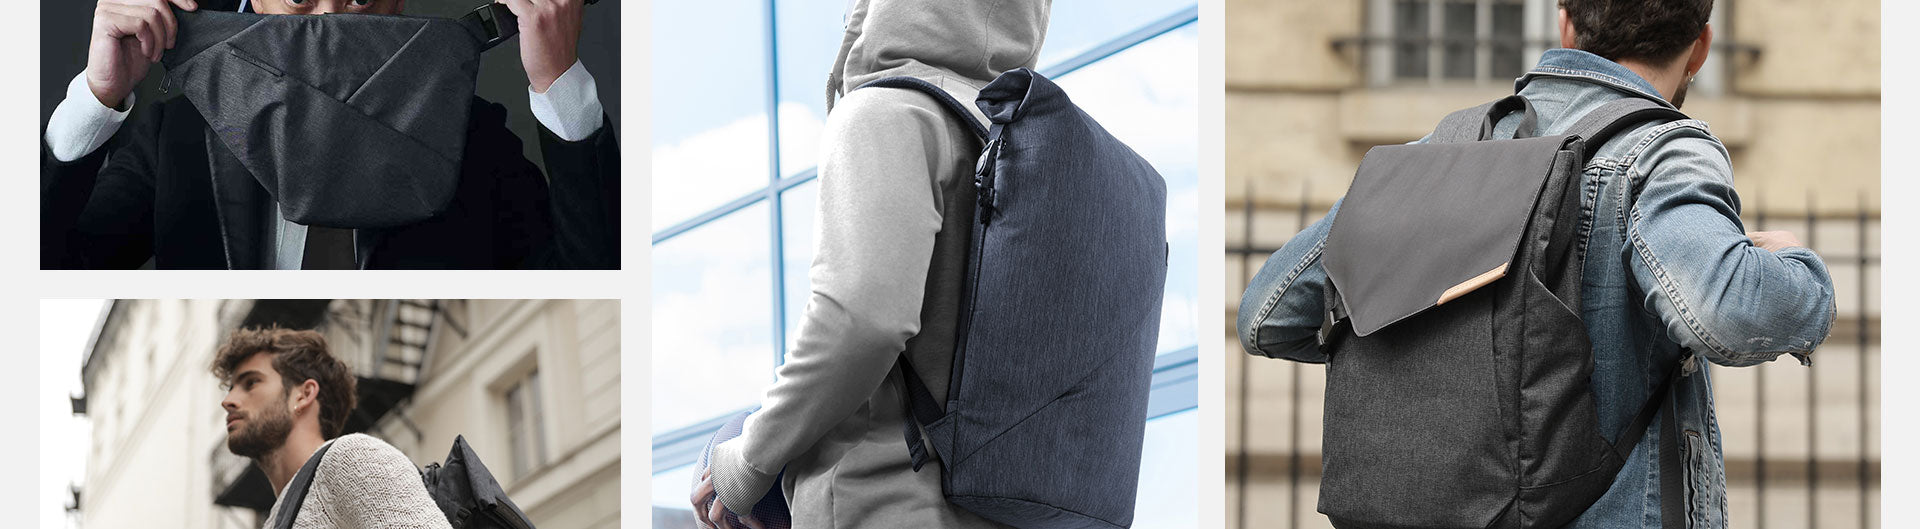 Get the best men's  sling bag,we offer sling bag,crossbody bags,chest bag,crossbody purse,sling bag for men,sling bags for women,black crossbody bag,sling backpack,small crossbody bag,designer crossbody bags,kickstarter backpack,kickstarter agency,kickstarter bags,indiegogo agency,best items to resell on niid.com